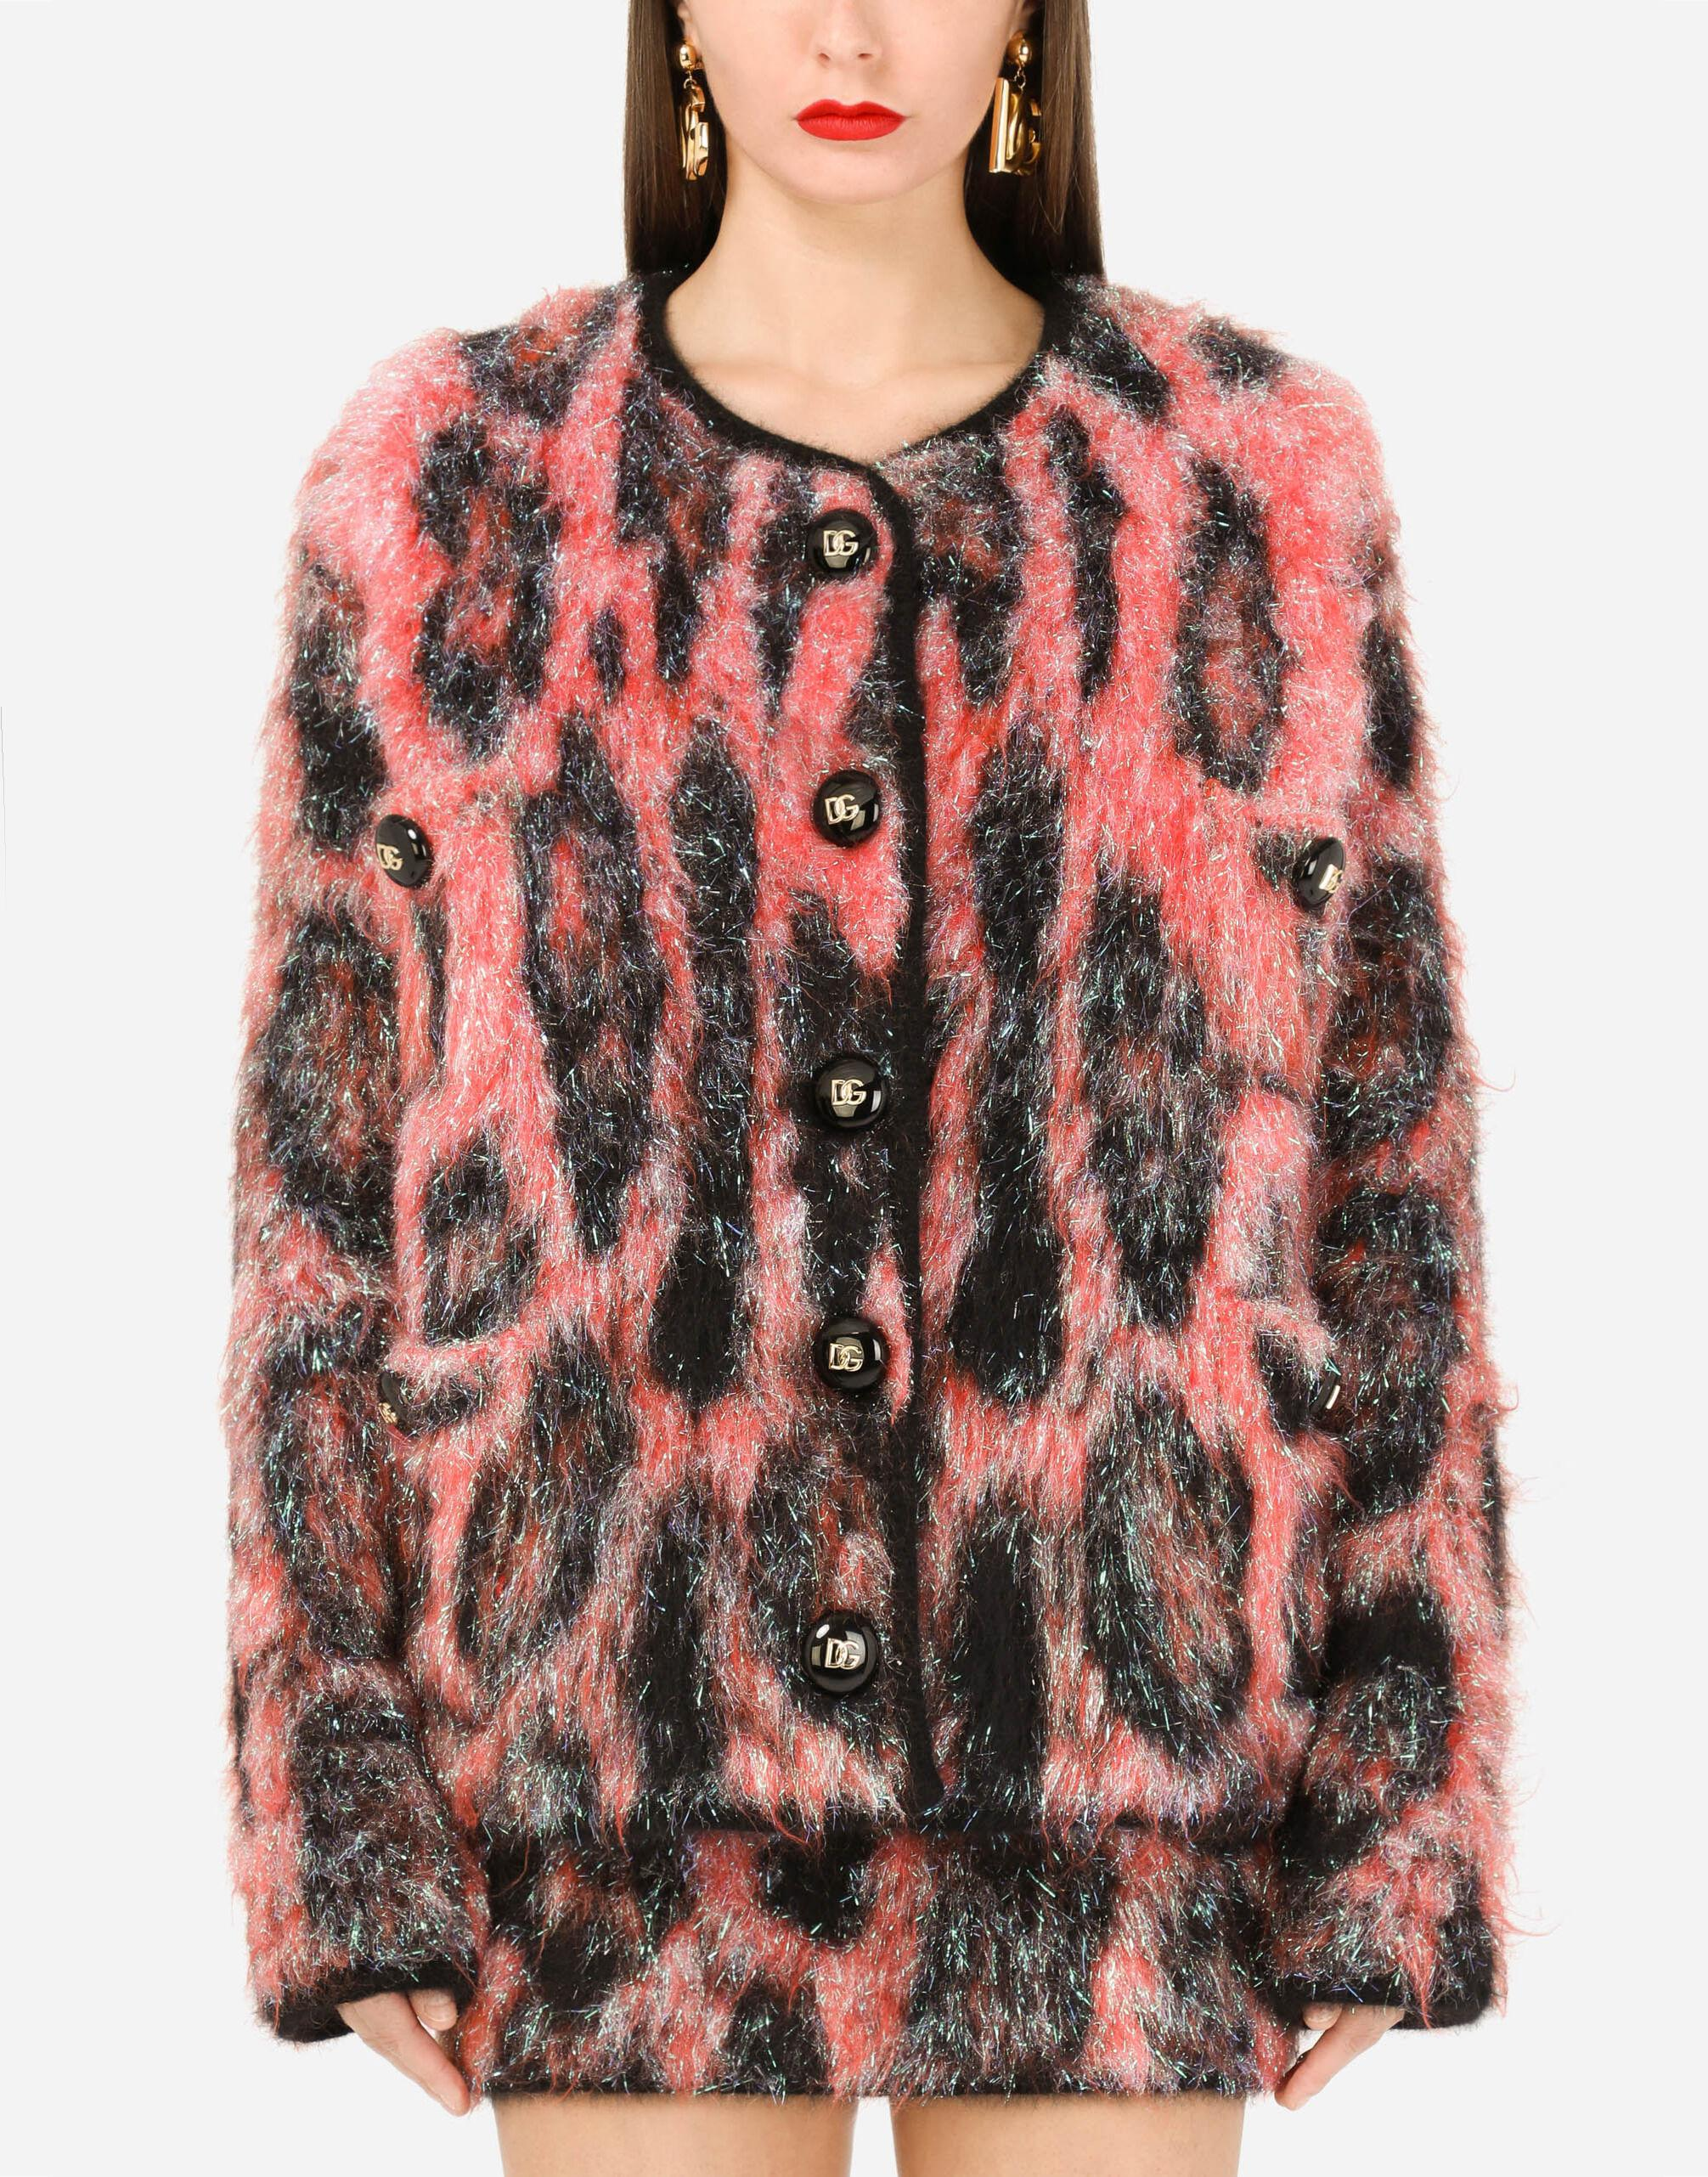 Knit jacquard jacket with neon leopard design